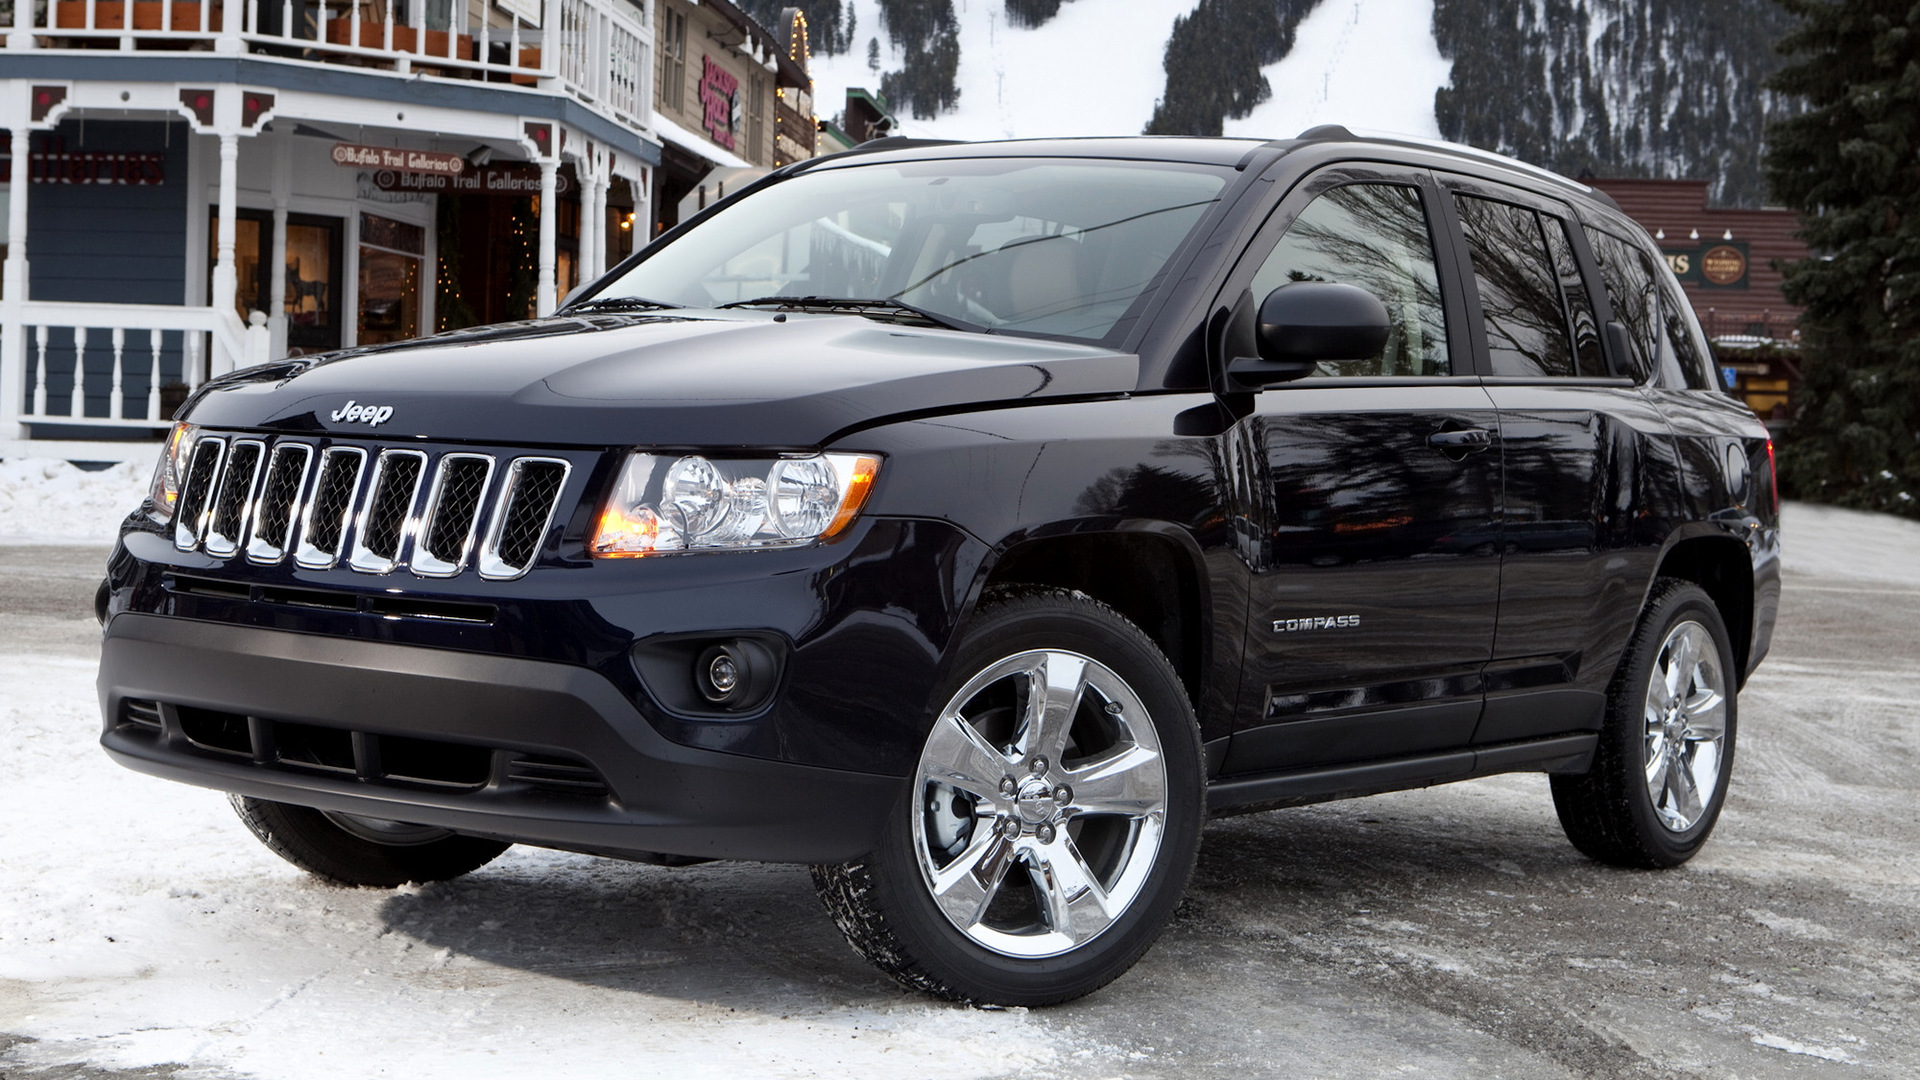 Jeep Compass (2010) Wallpapers And HD Images